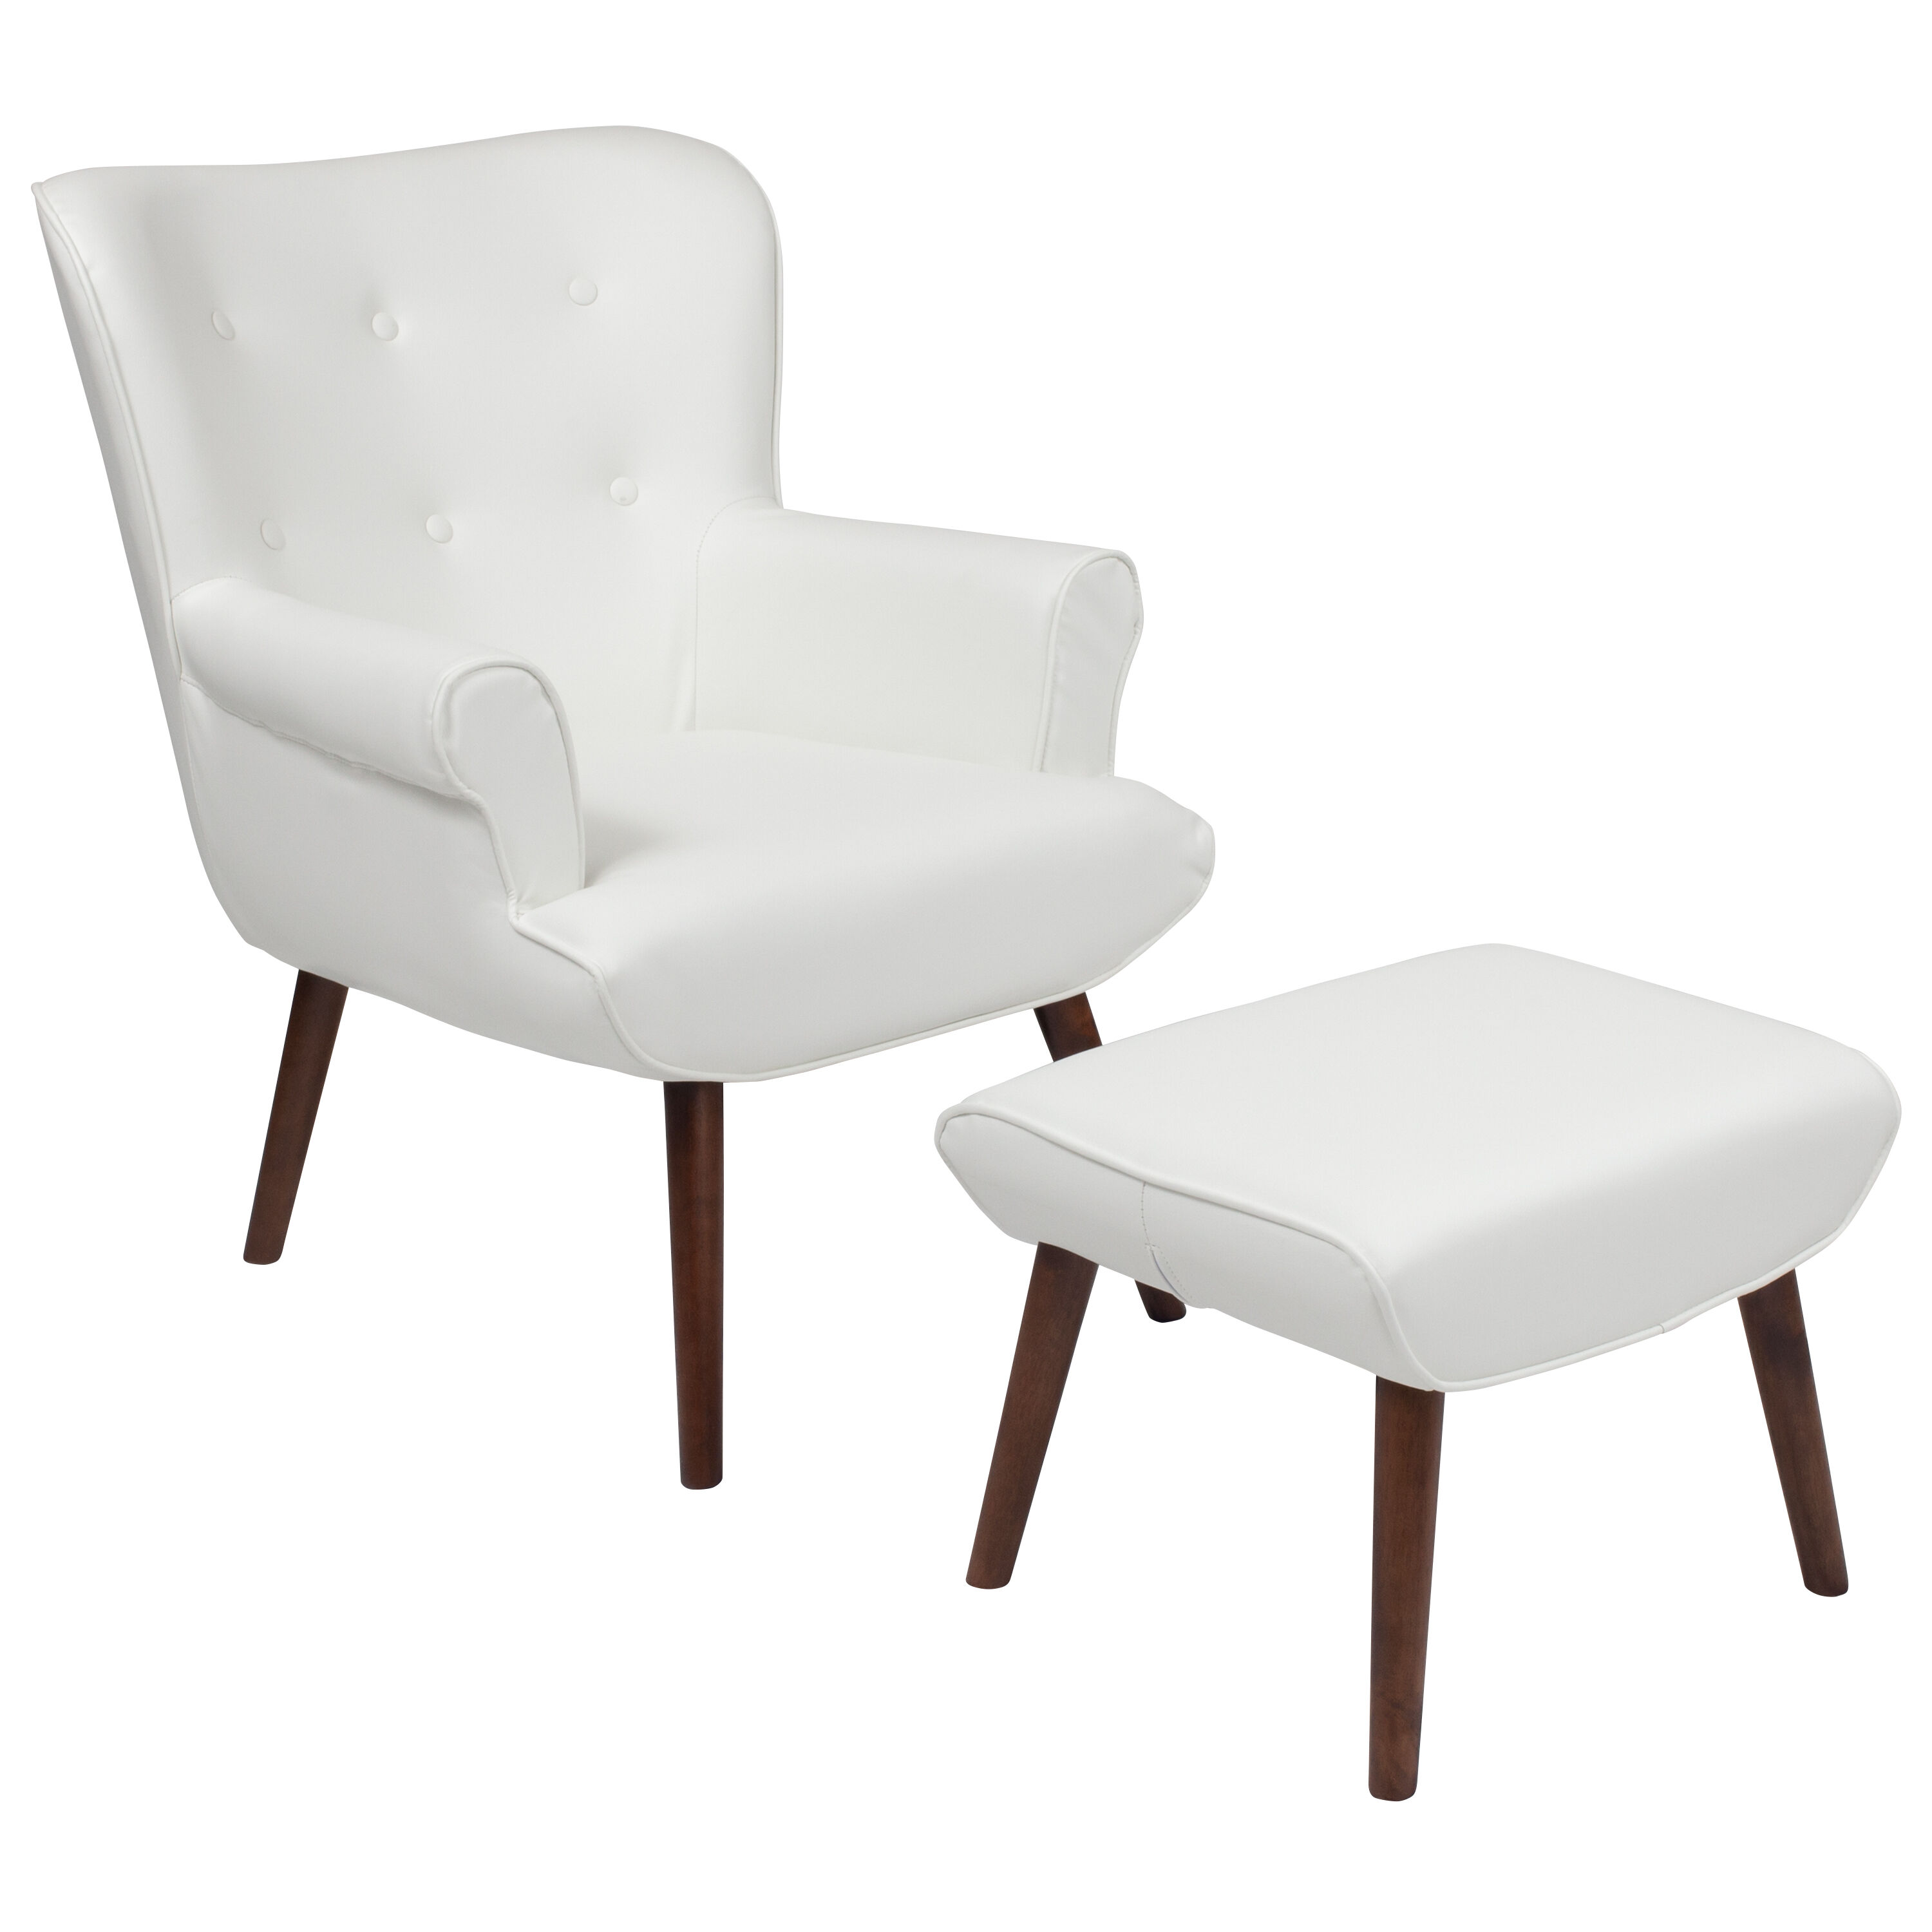 white leather wingback chair rocking chairs target wing ott qy b39 co whl gg churchchairs4less com our bayton upholstered with ottoman in is on sale now